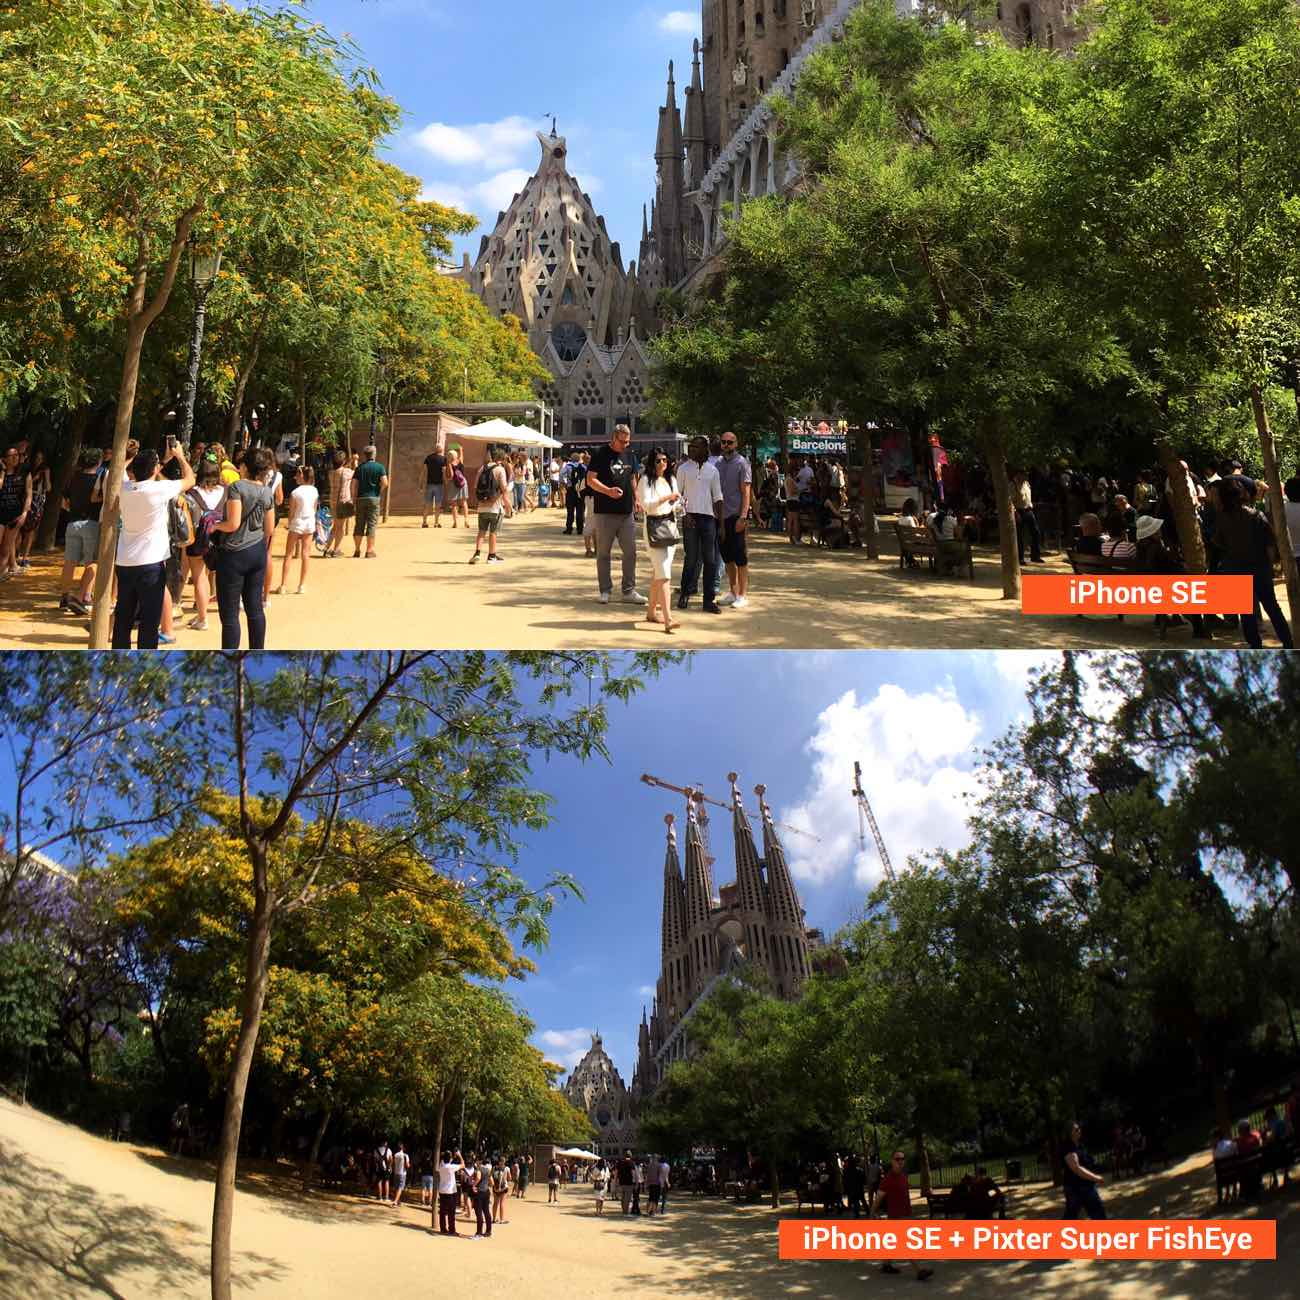 attachable smartphone camera fisheye lens comparison normal photo